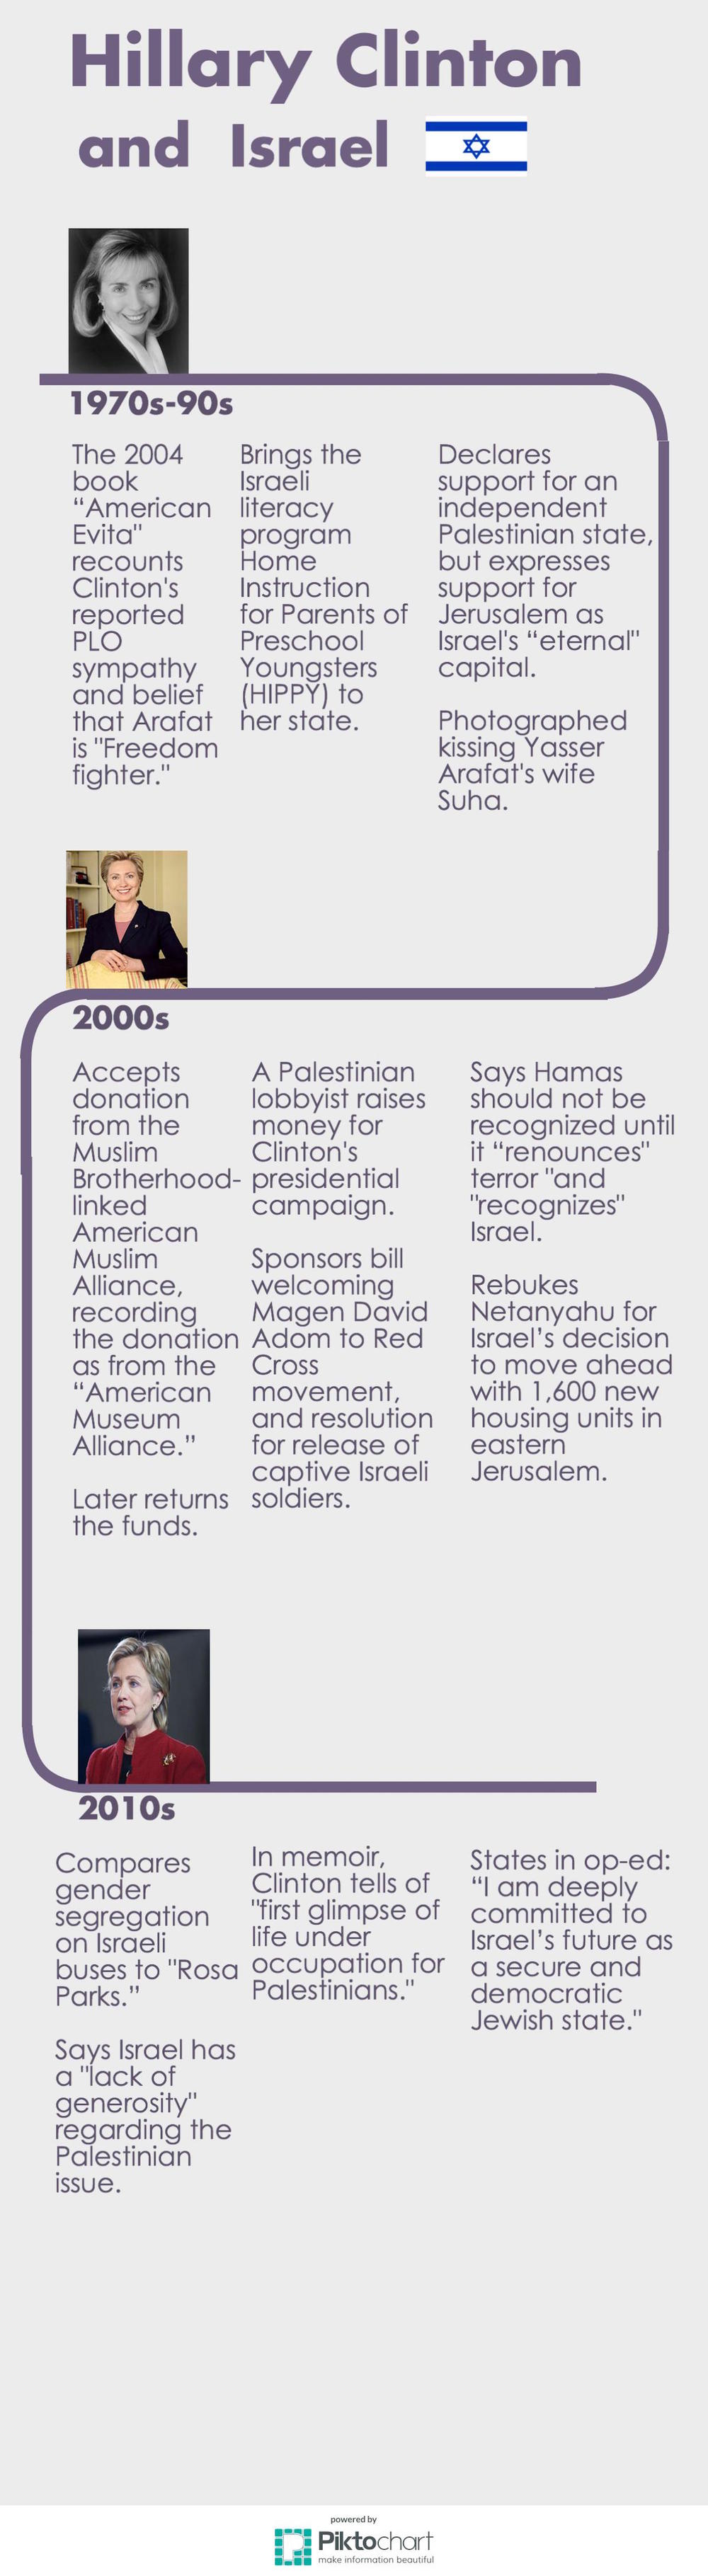 A chart on Hillary Clinton's history with Israel-related issues. Download the chart in PDF format here. Credit: JNS.org/Piktochart.